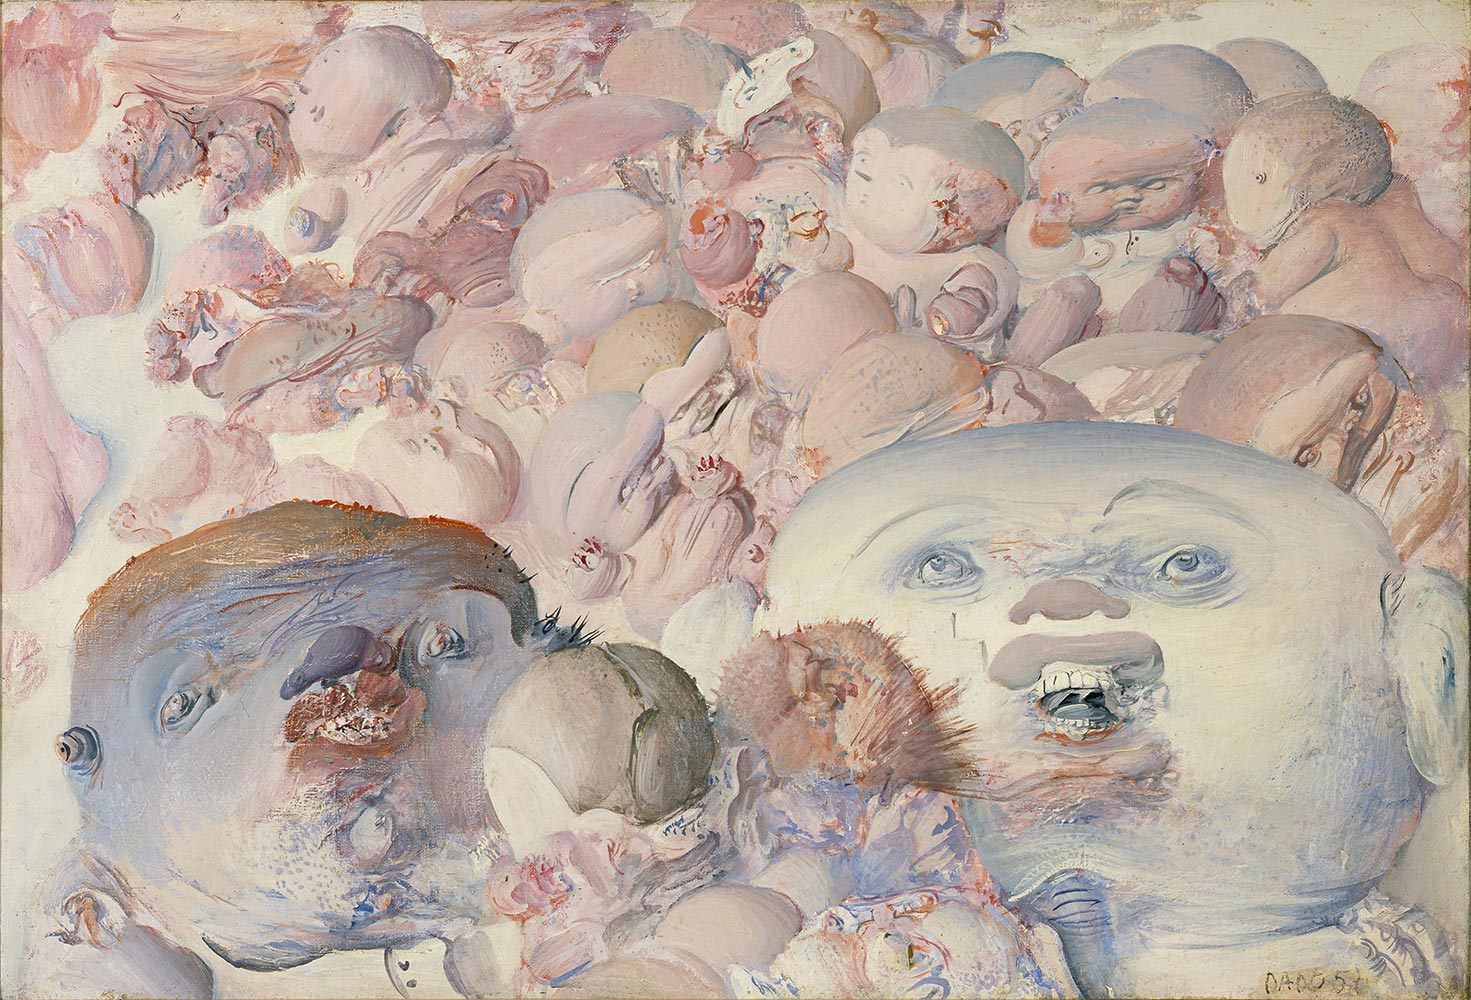 Dado's painting: Untitled, 1957